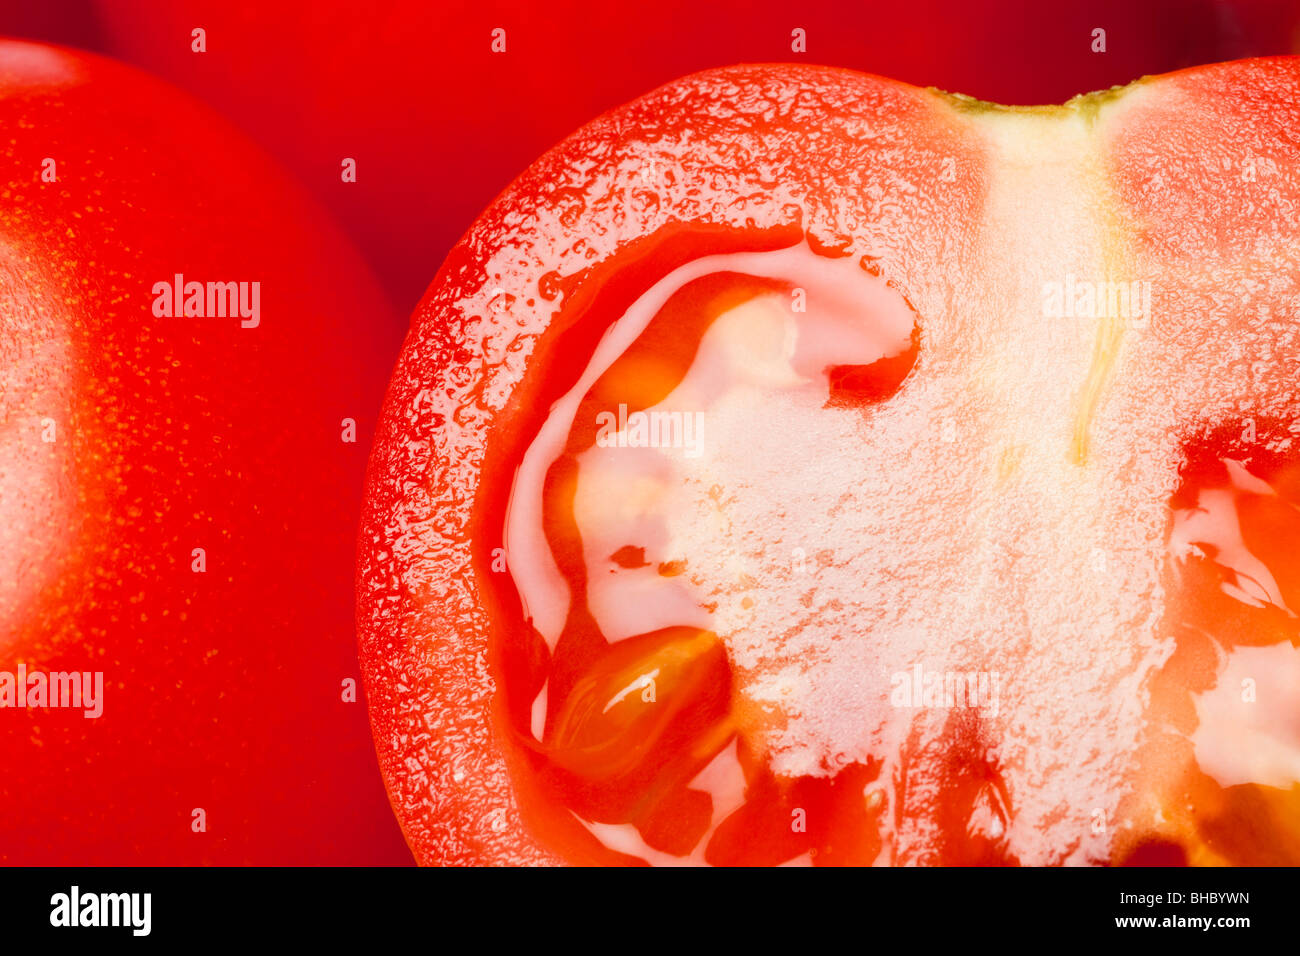 Ripe juicy red tomatoes whole and halved close up - Stock Image